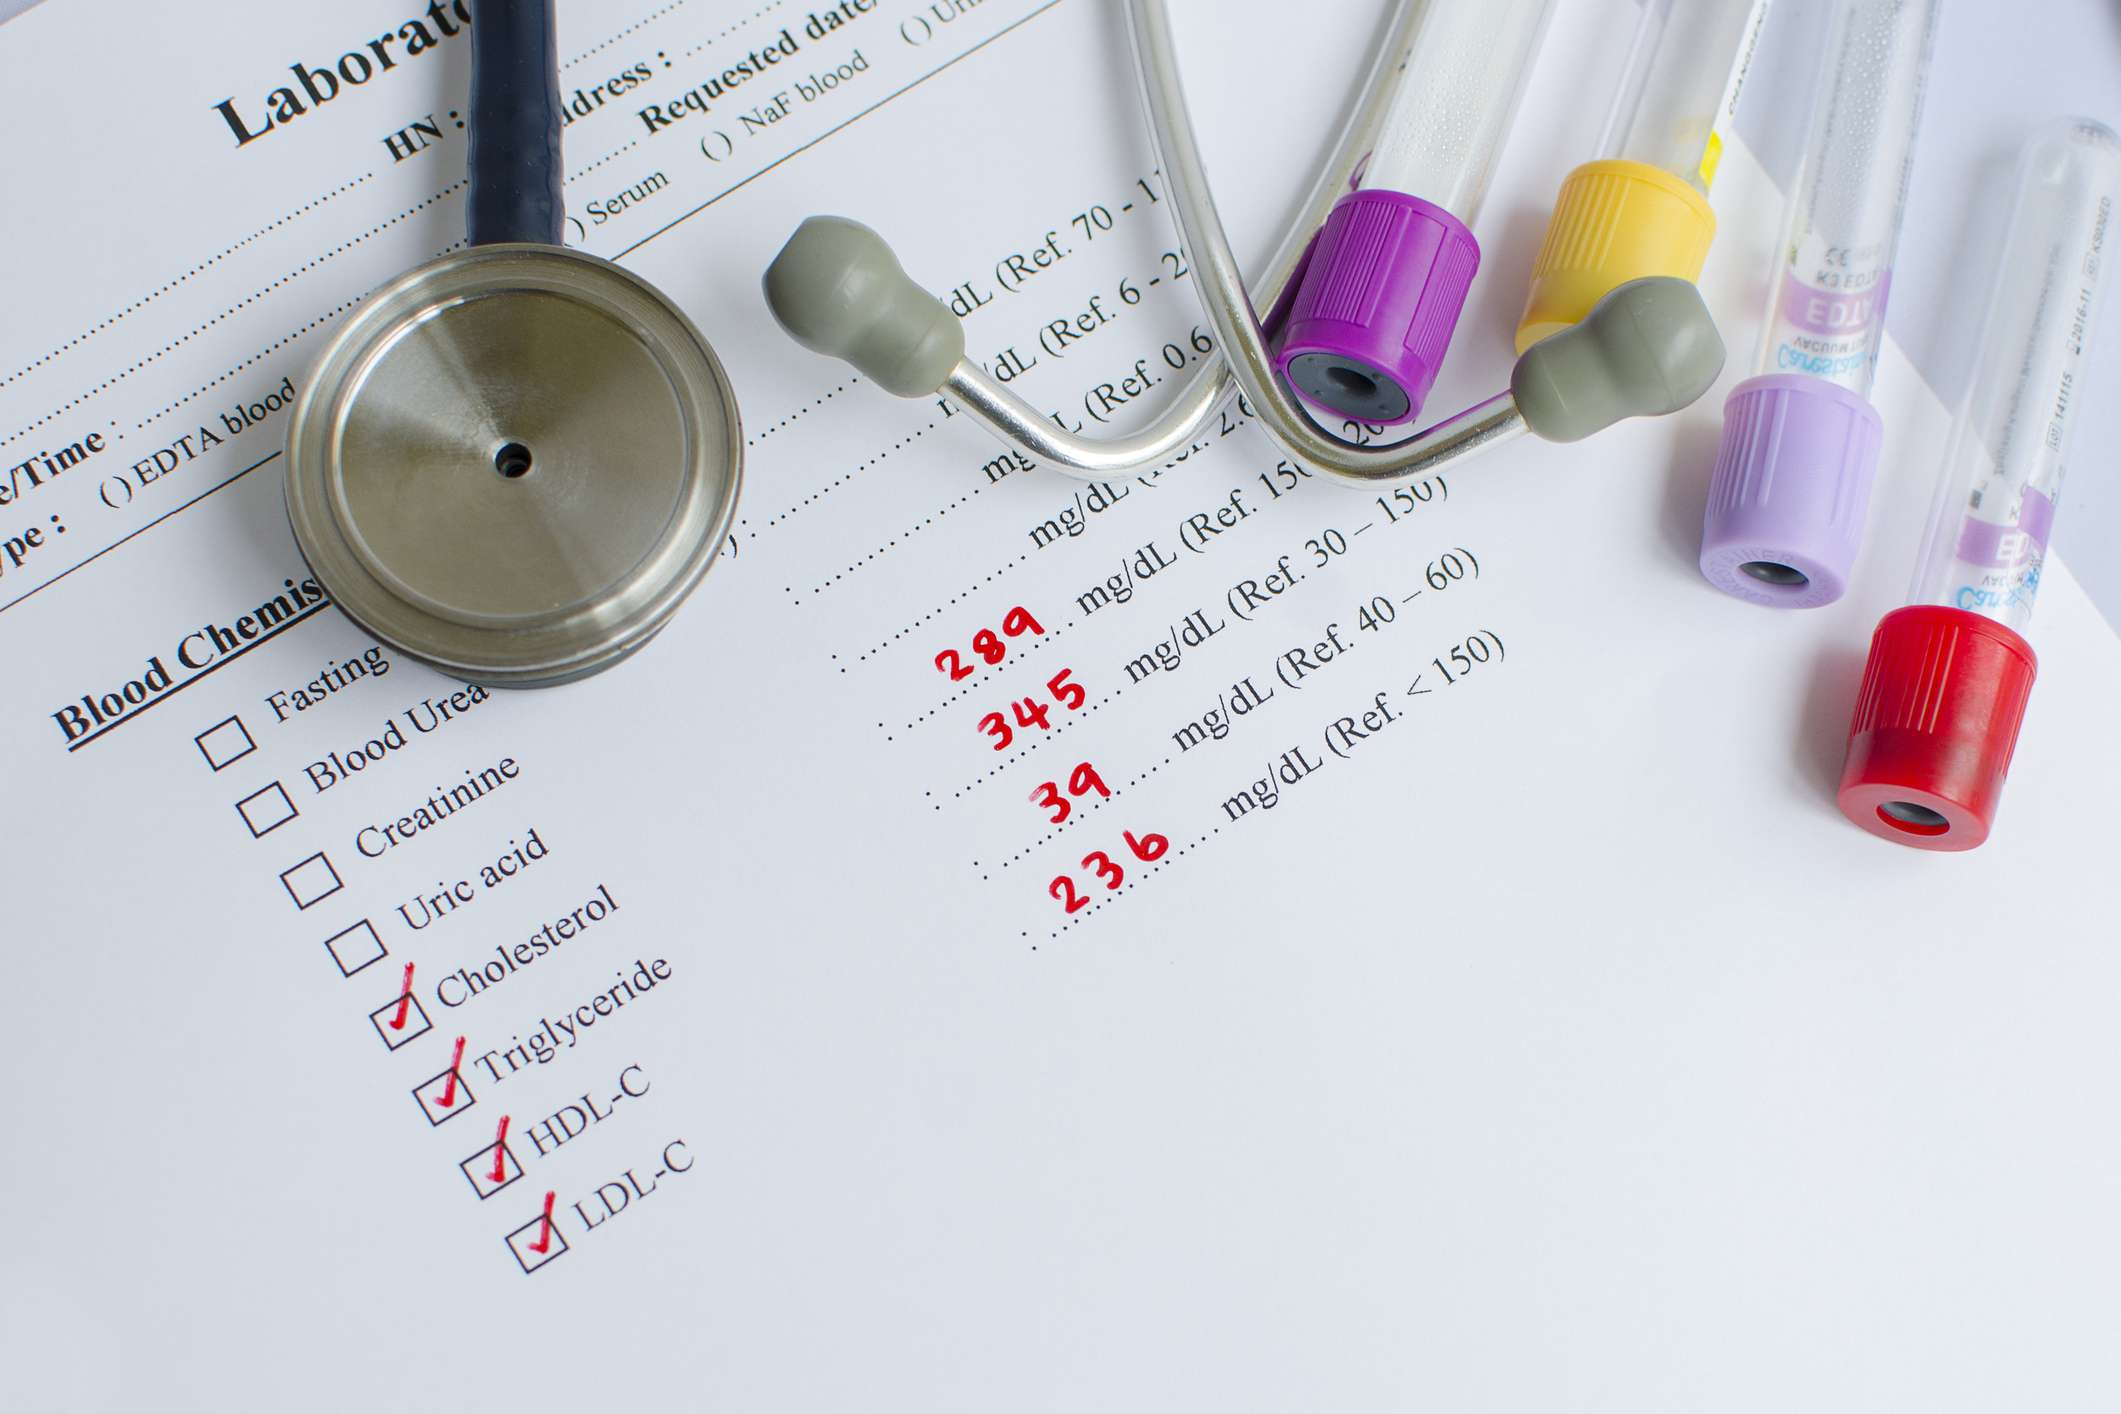 LDL cholesterol testing form and vials